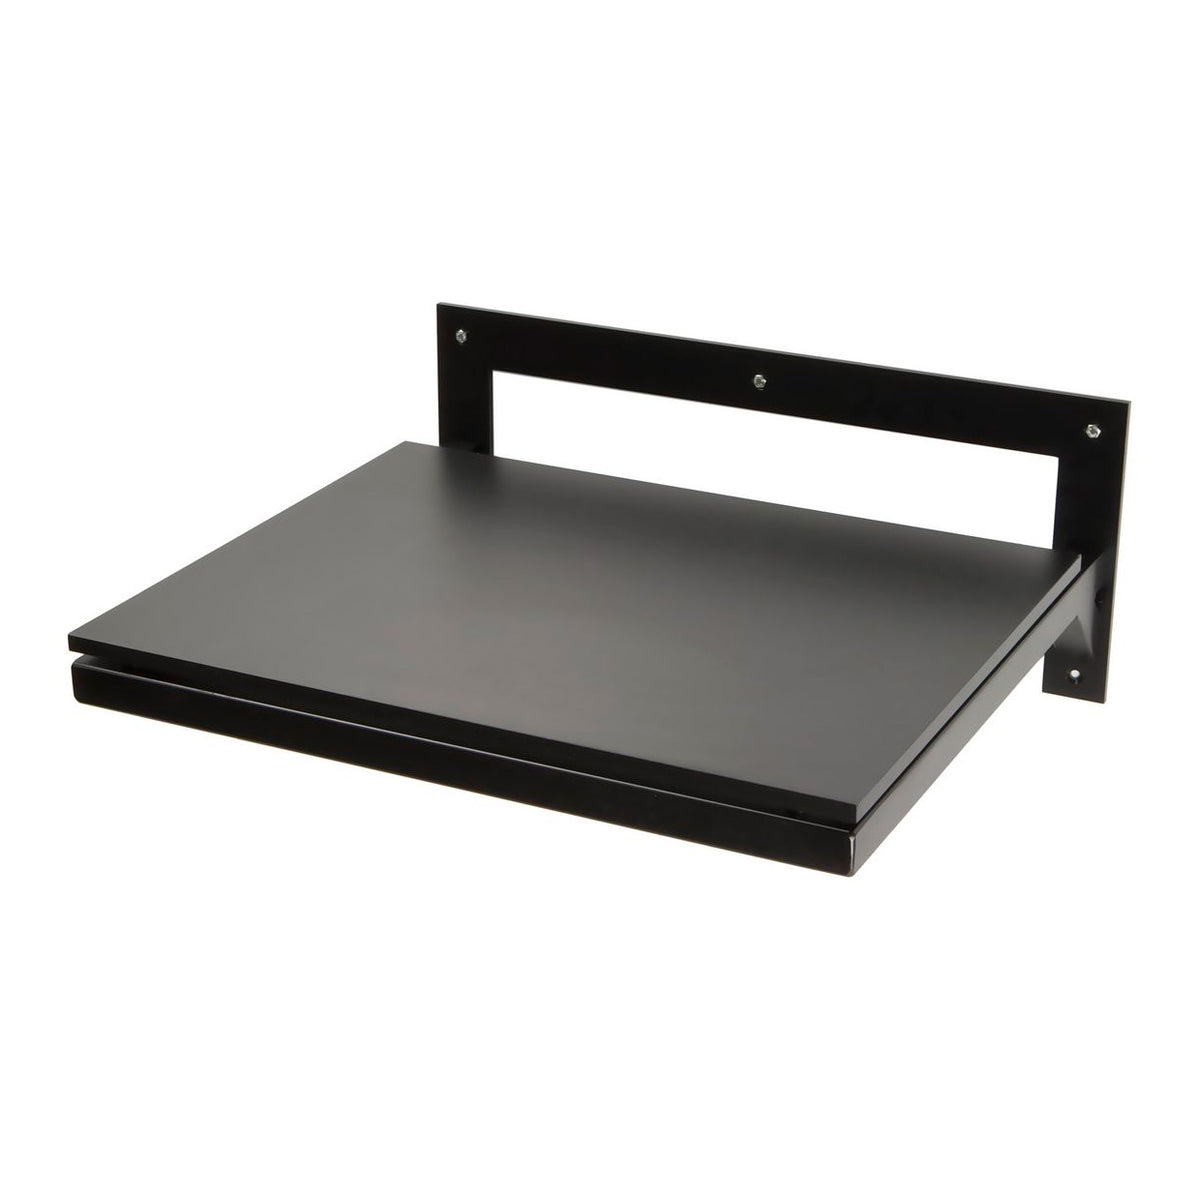 Pro-Ject: Wallmount It 1 Turntable Shelf